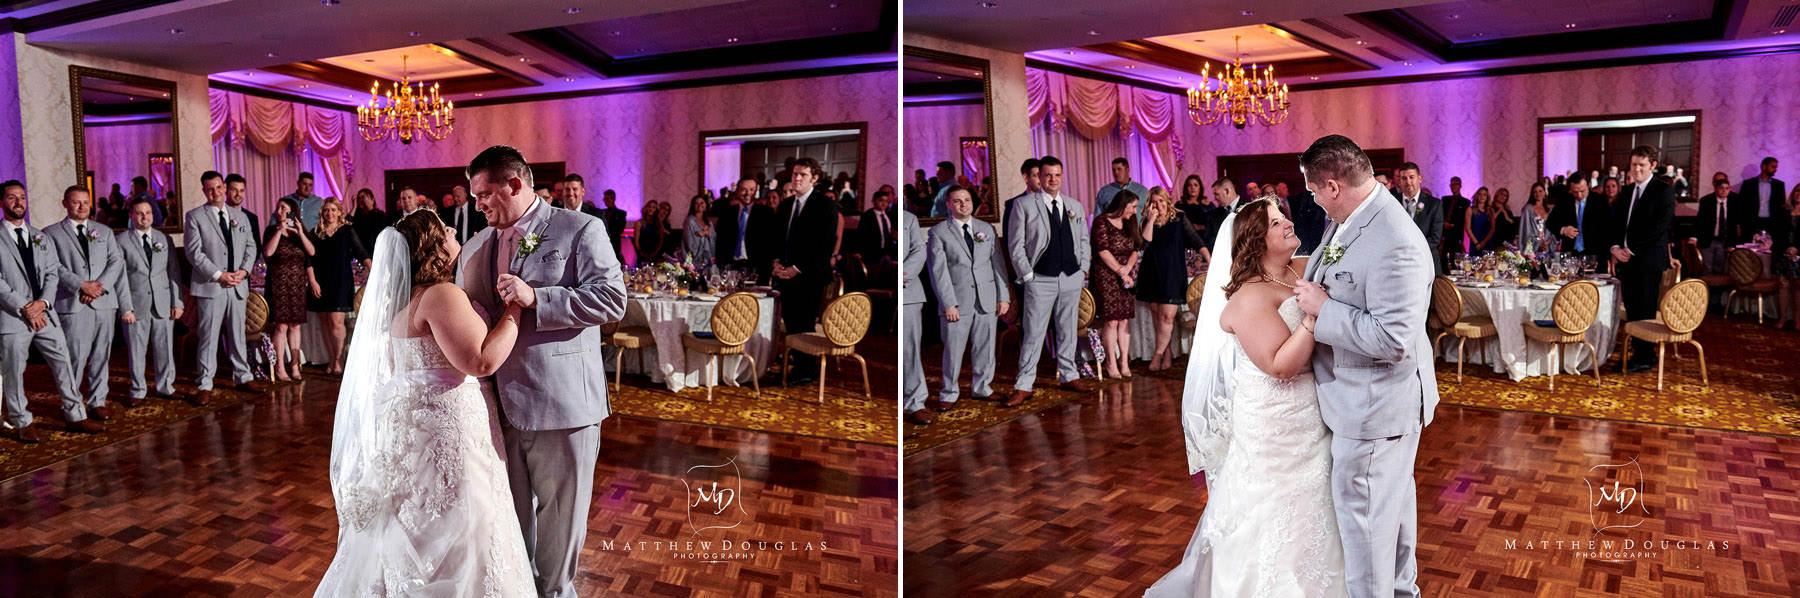 Nassau Inn wedding first dance photos